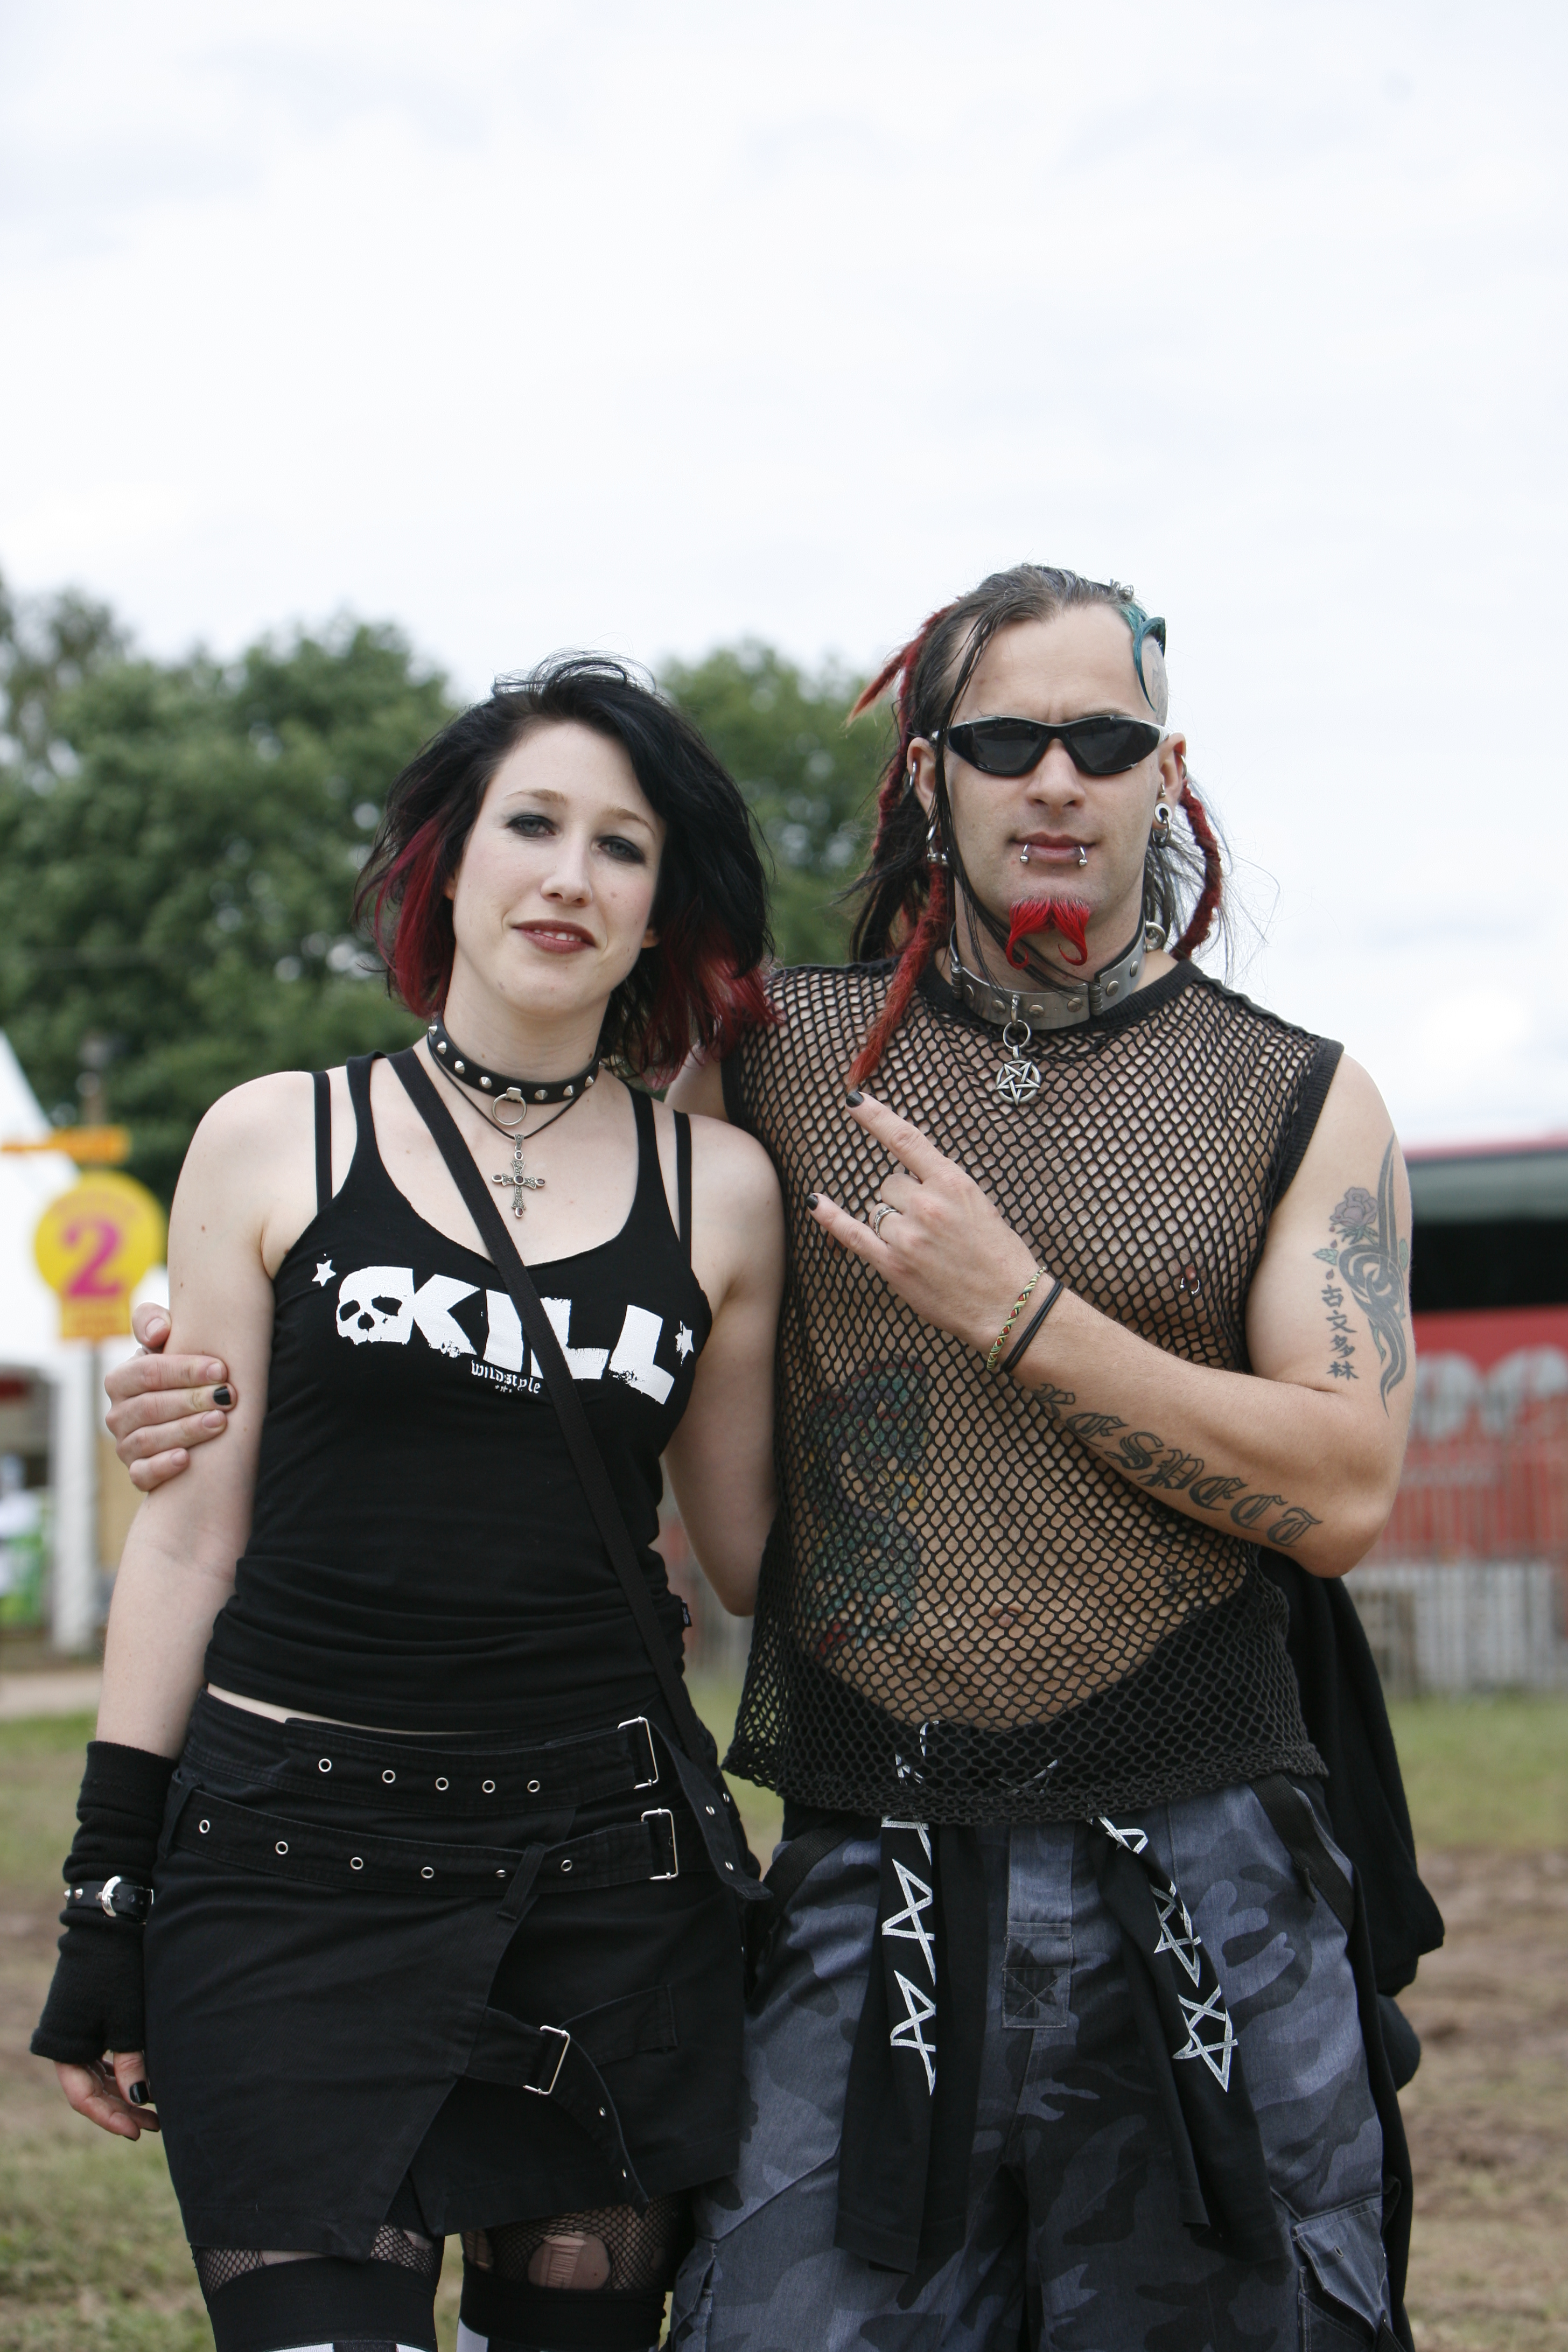 A goth couple at the Eurockéennes of 2007